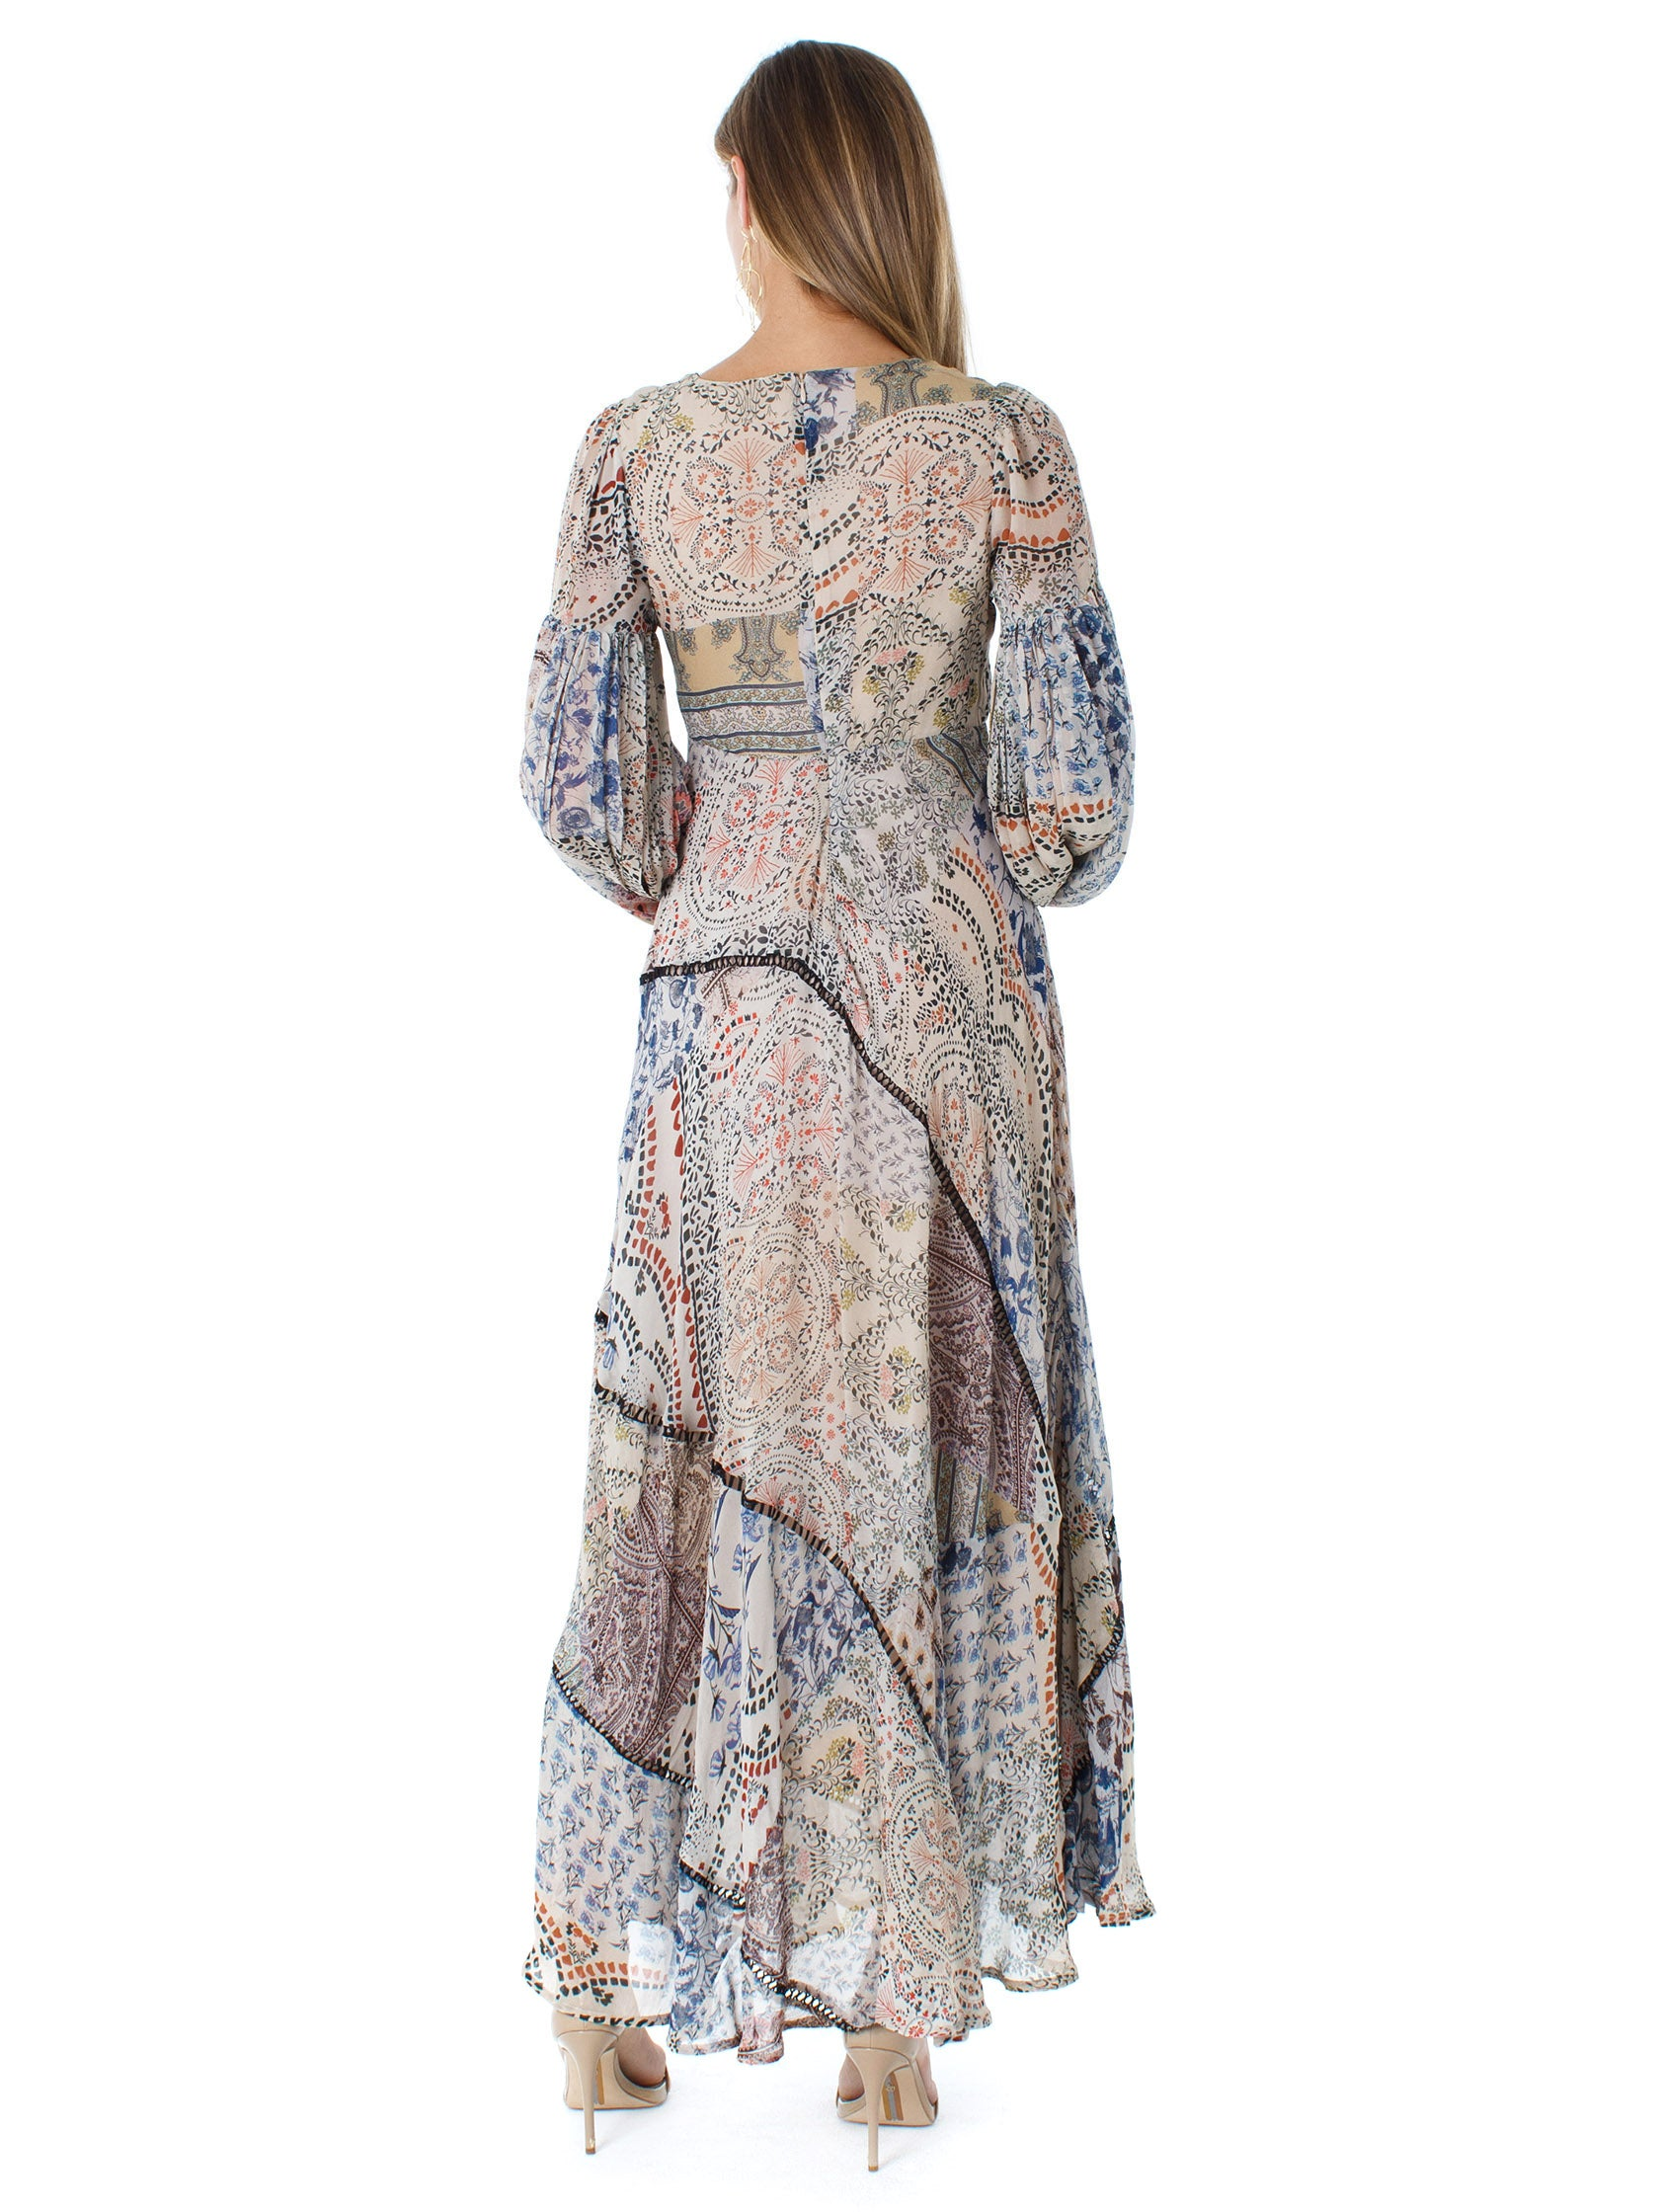 Women wearing a dress rental from Free People called Moroccan Dreams Maxi Dress